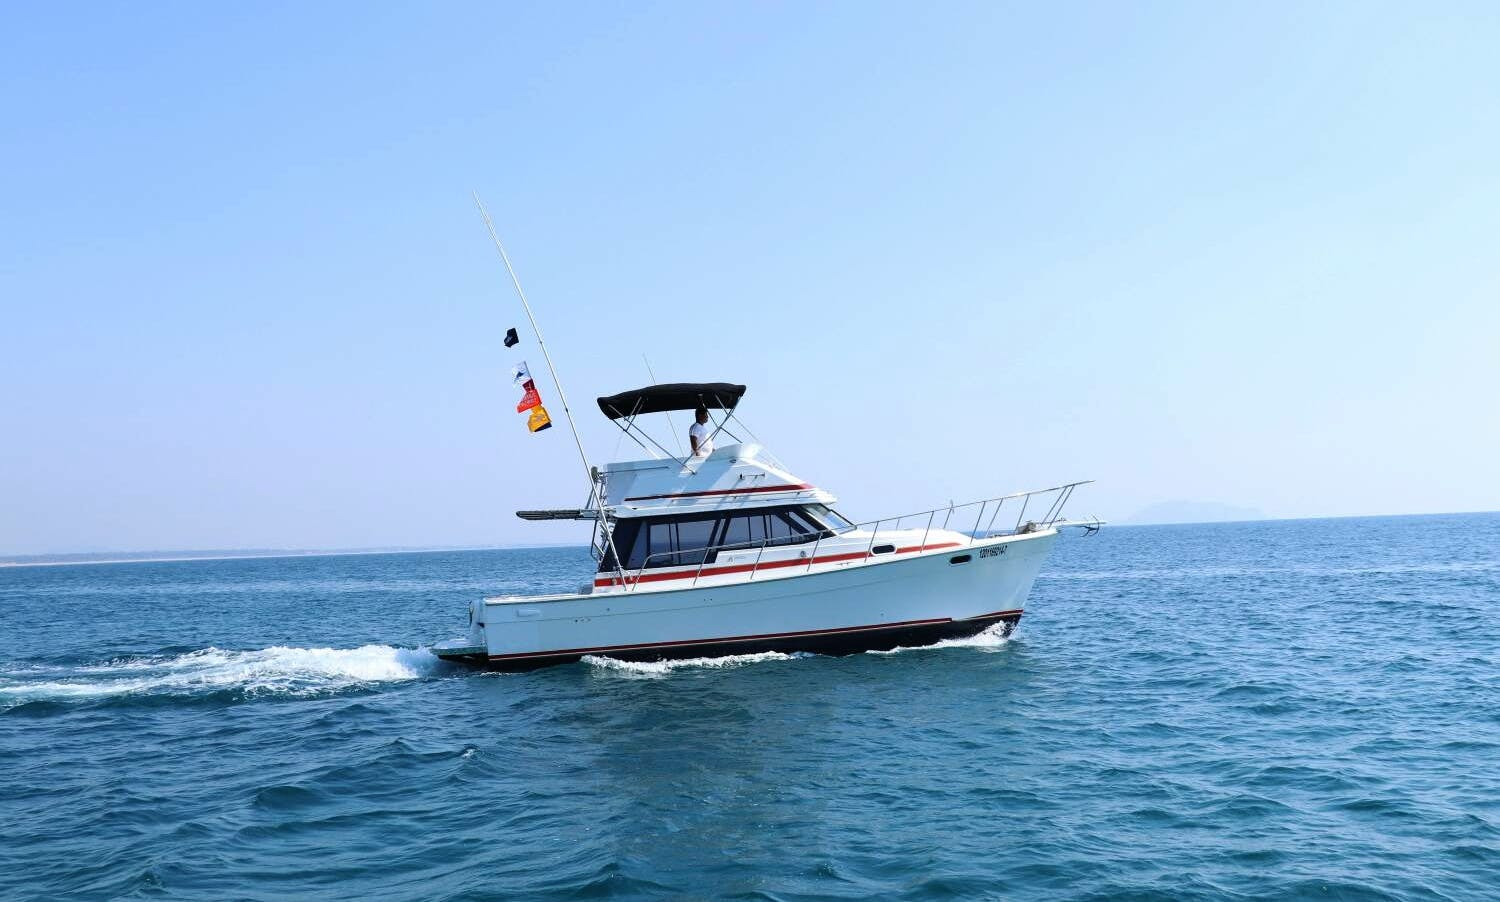 Ixtapa Zihuatanejo Fishing Charter for 6 People